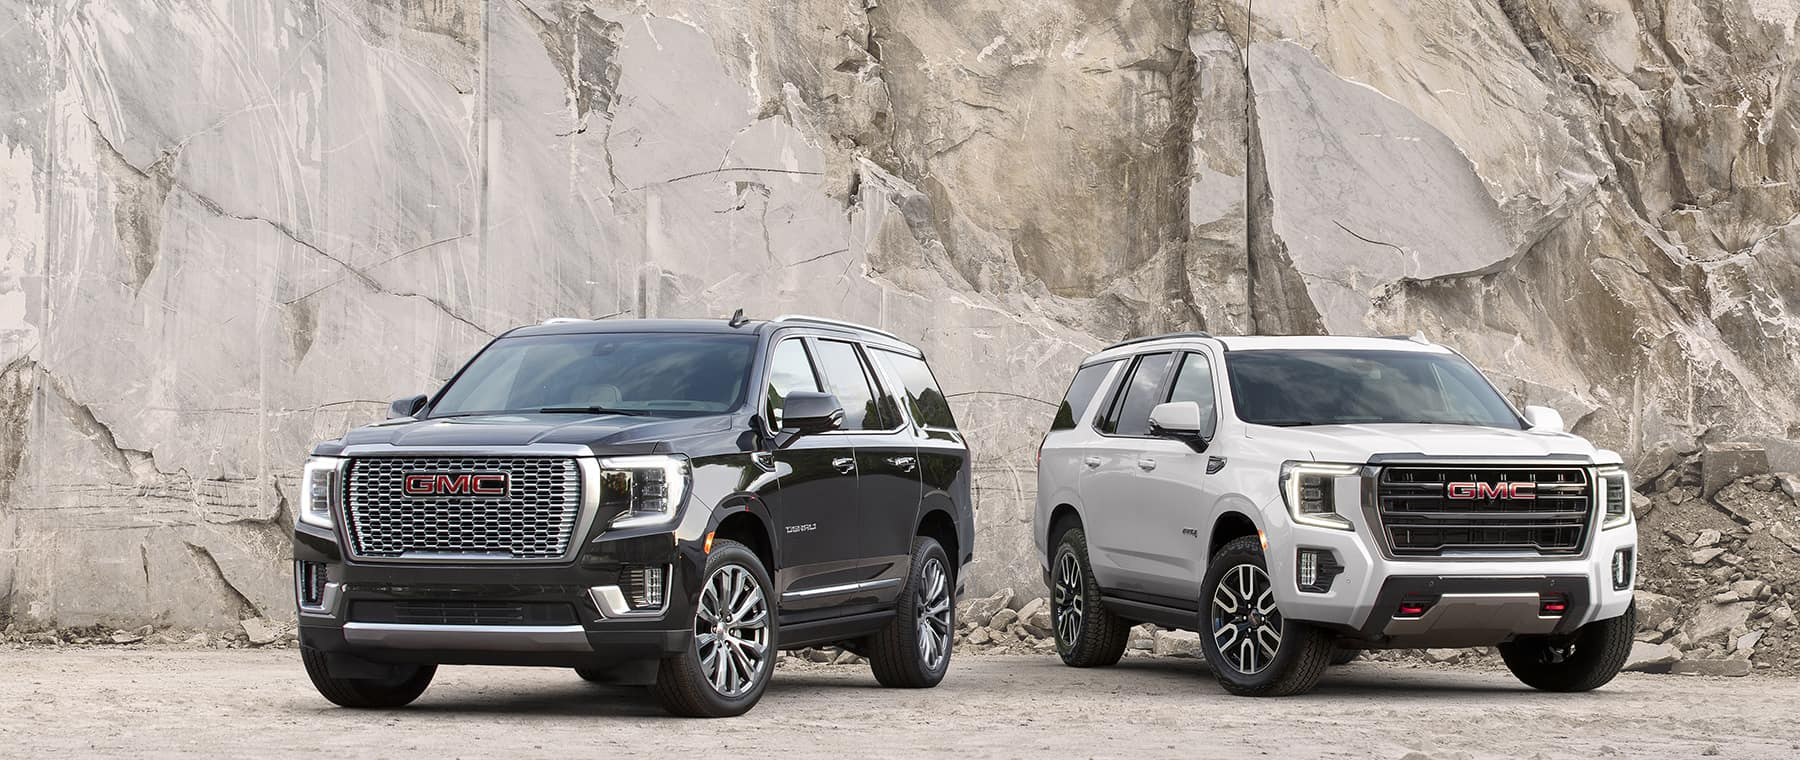 GMC Yukon and Denali